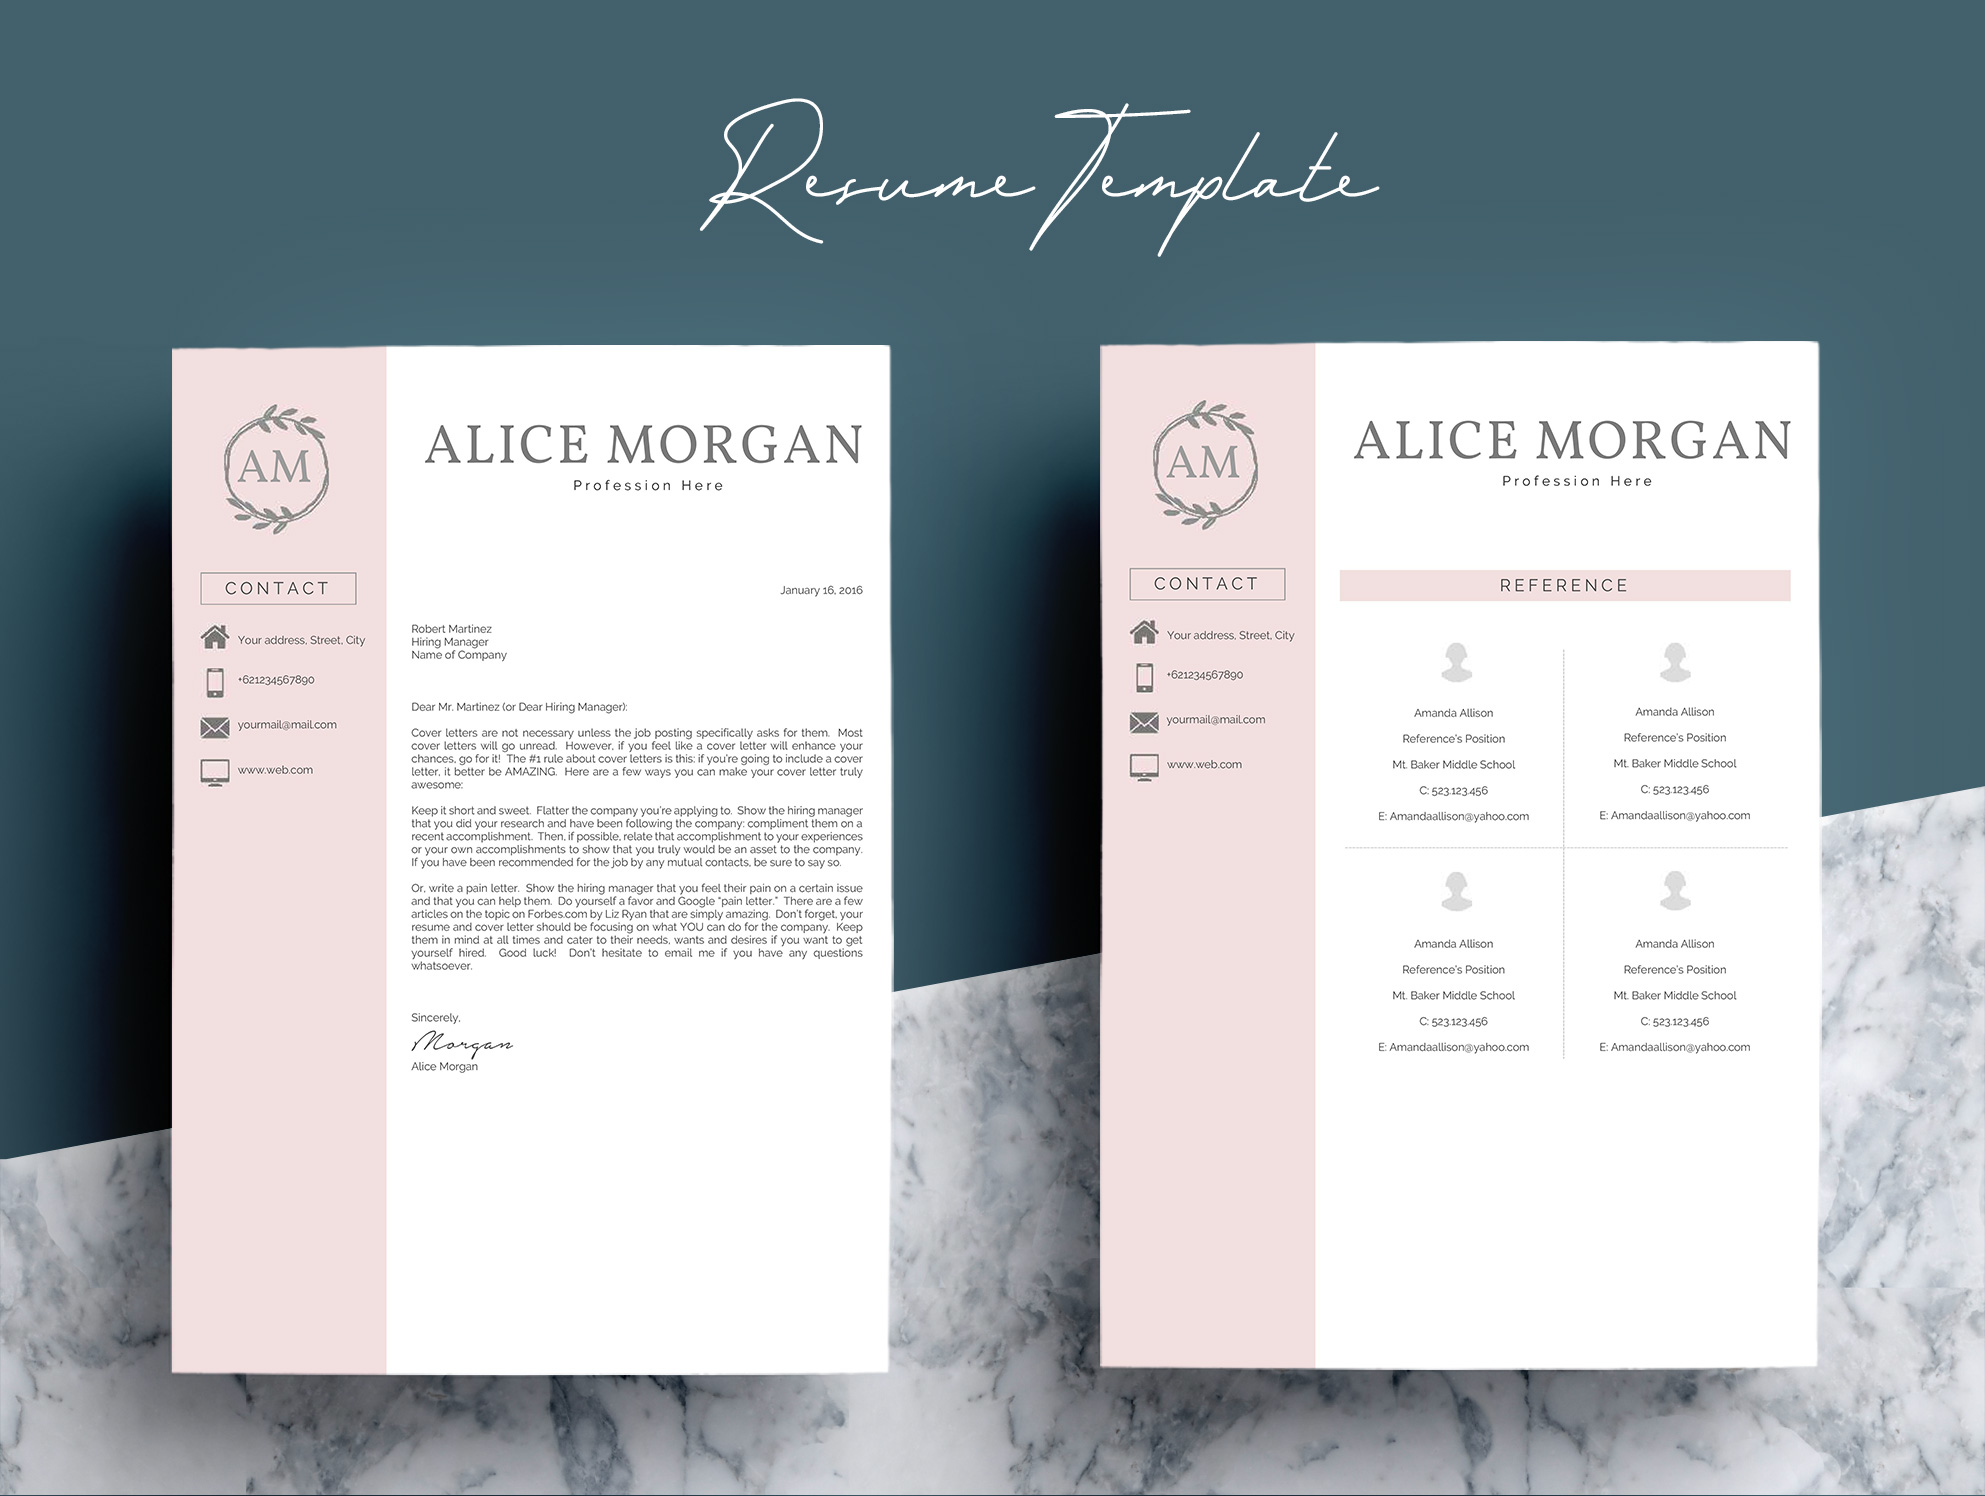 Professional Creative Resume Template - Alice Morgan example image 7